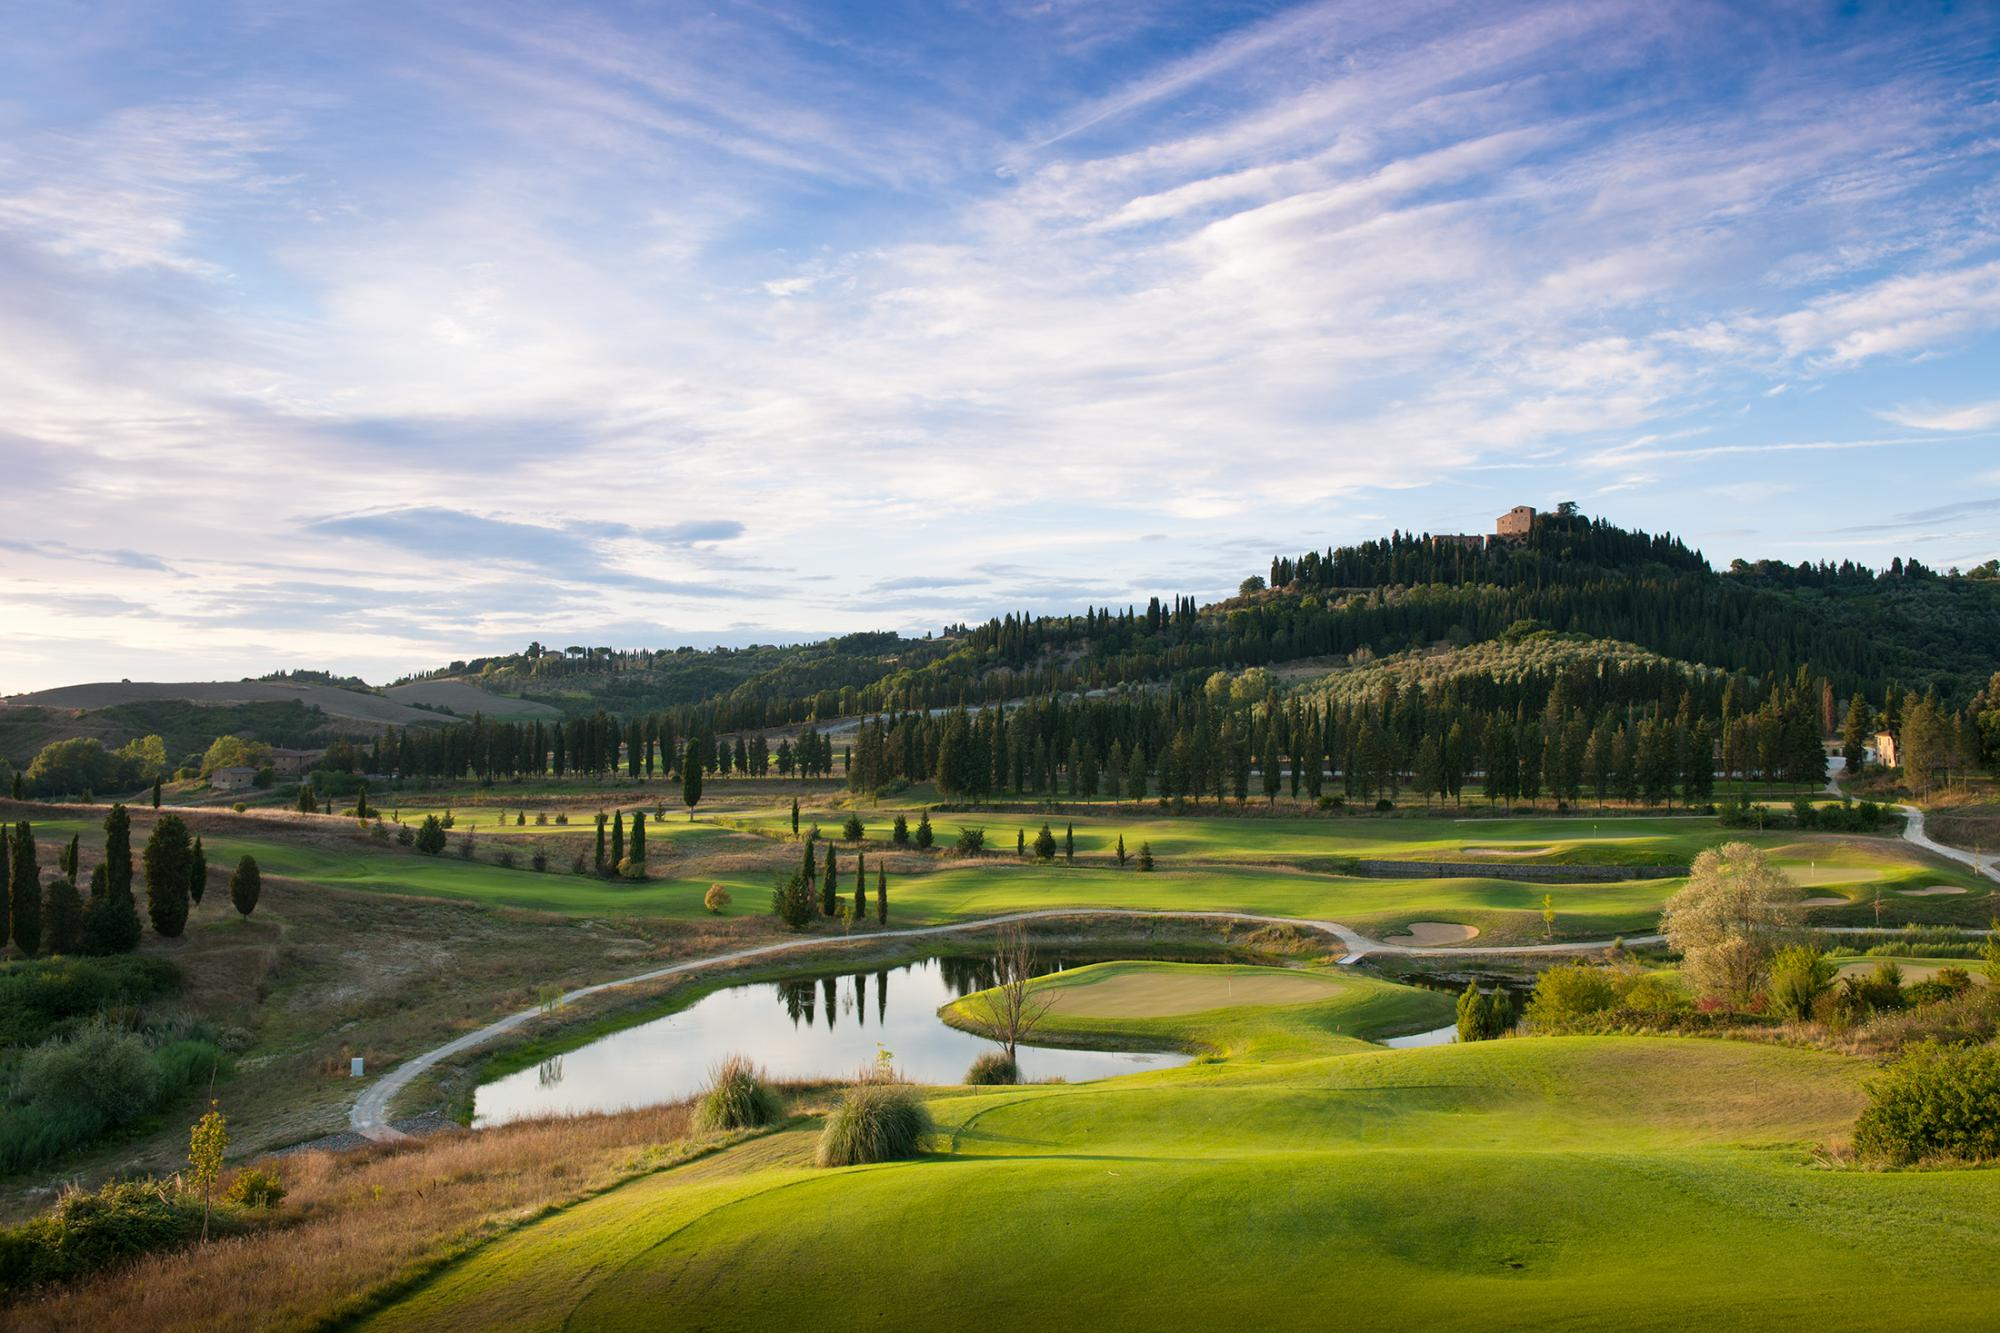 The Golf Club Castelfalfi's beautiful golf course within brilliant Tuscany.